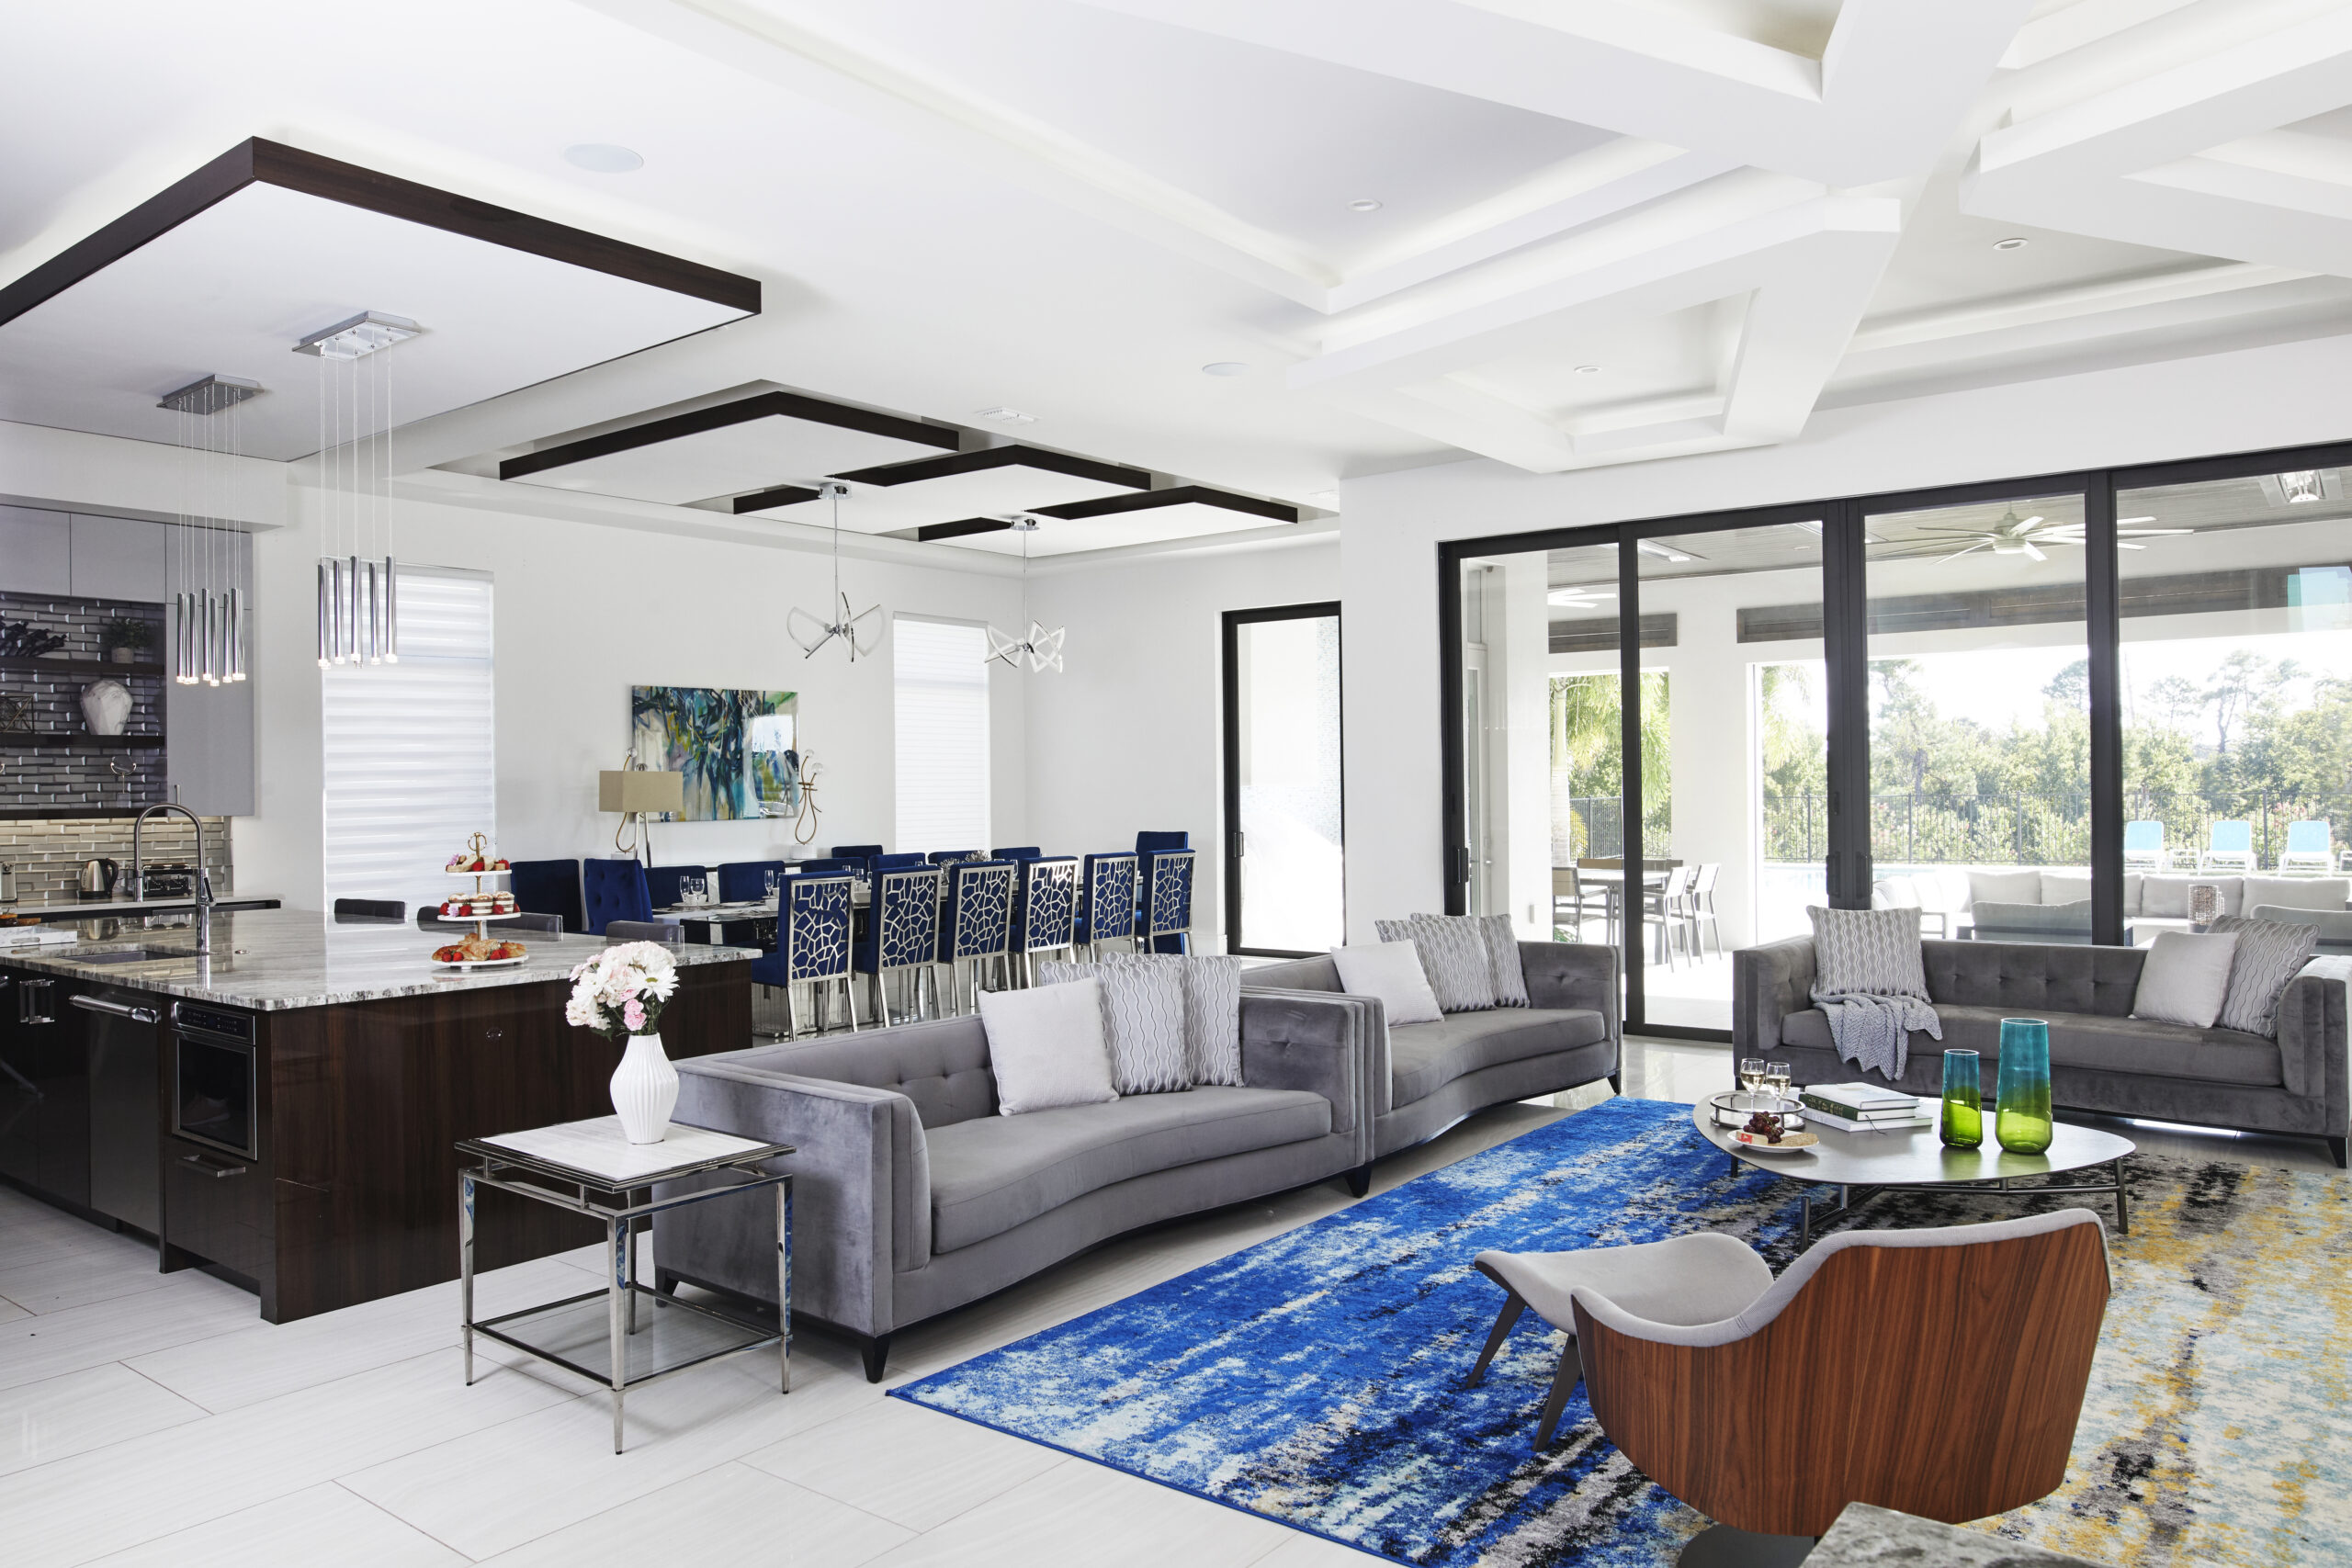 Large vacation rentals for family reunions scaled